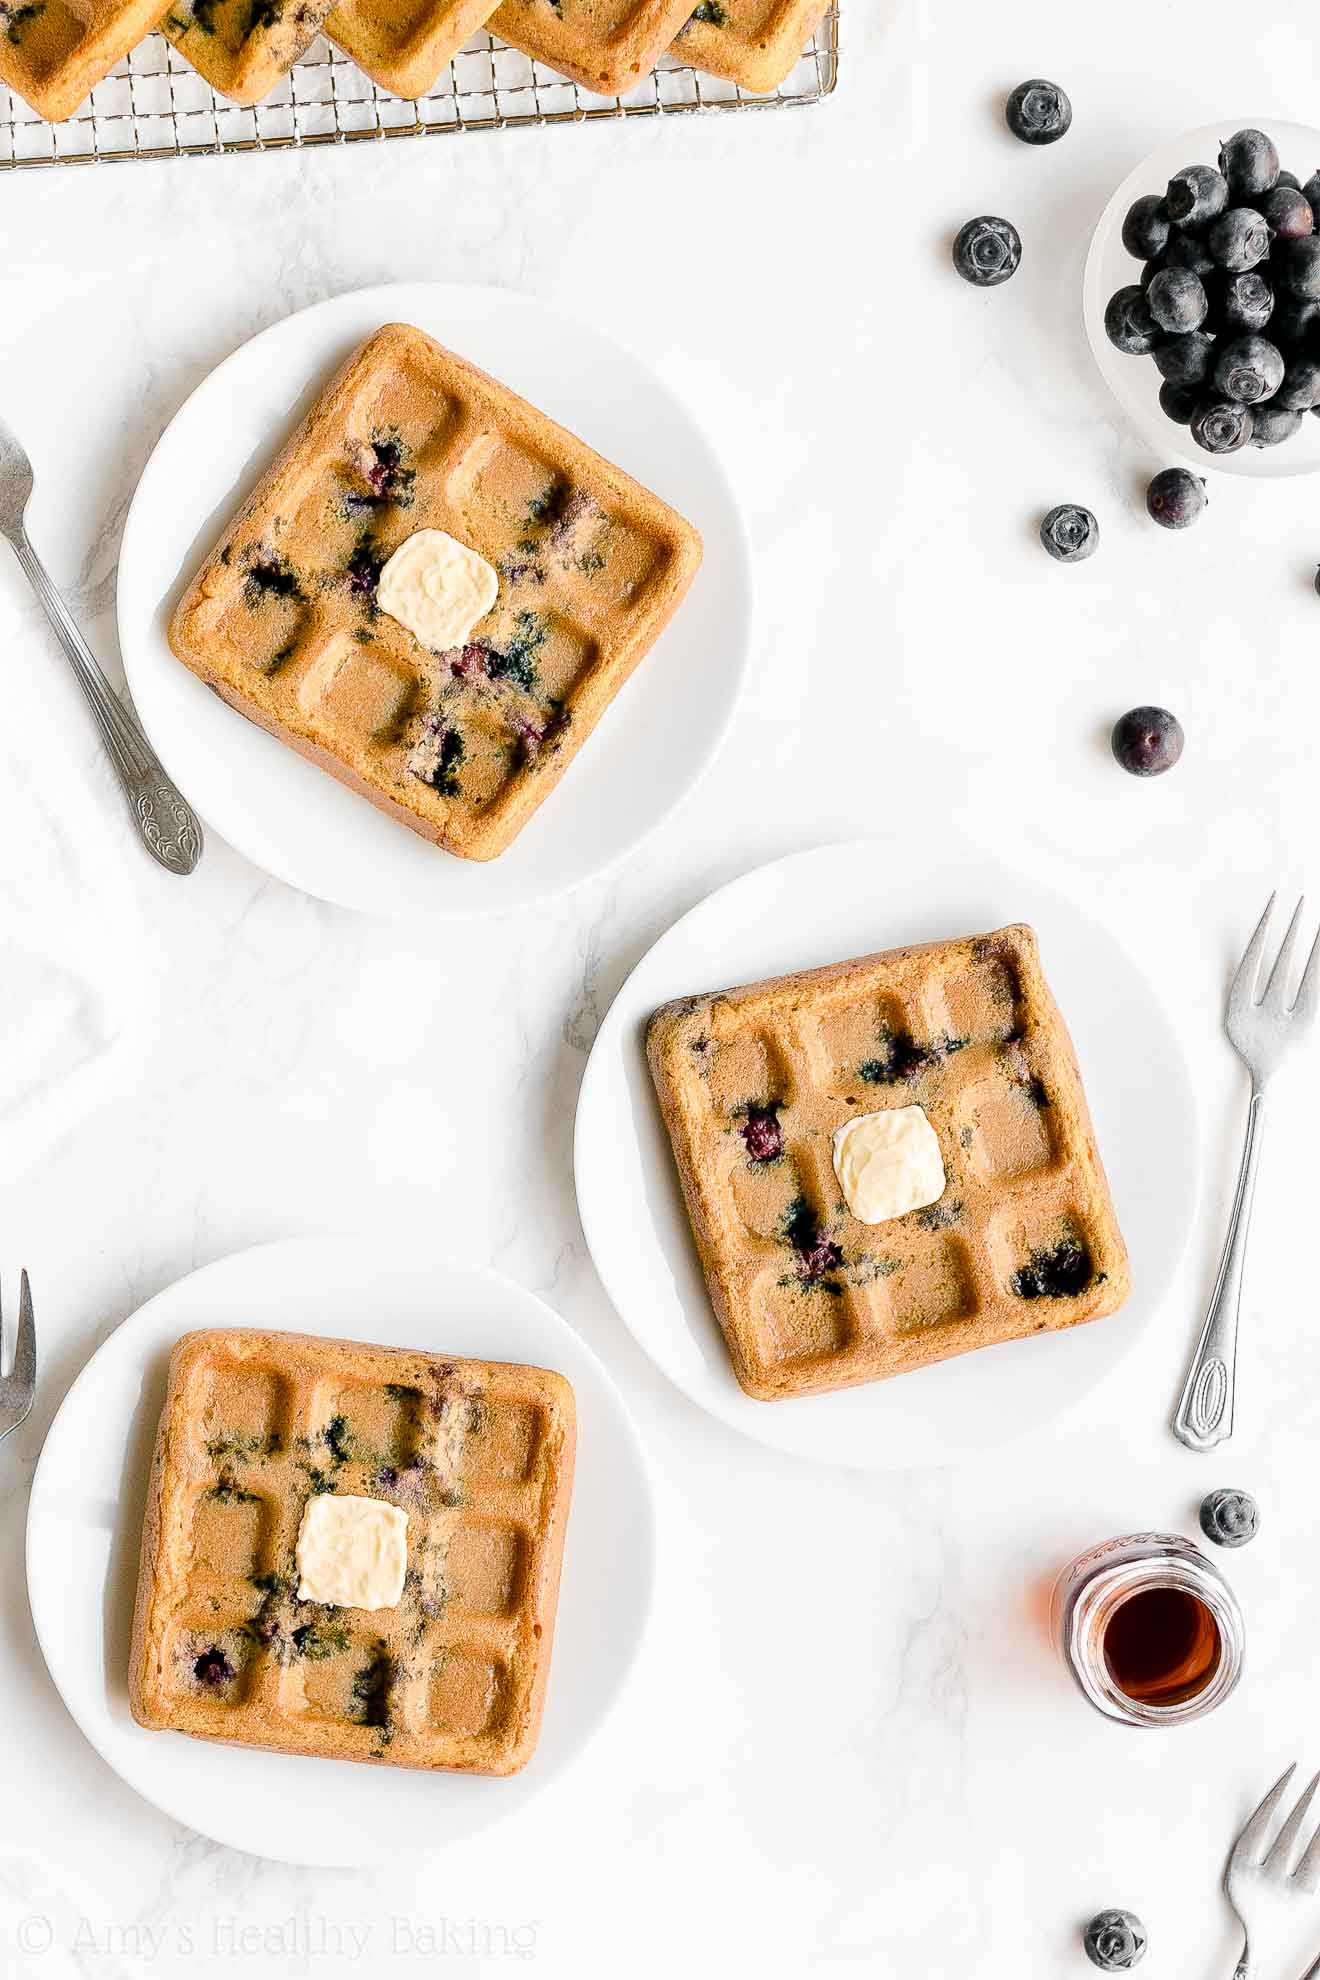 Easy Healthy Homemade Crispy Fluffy Gluten Free Blueberry Waffles